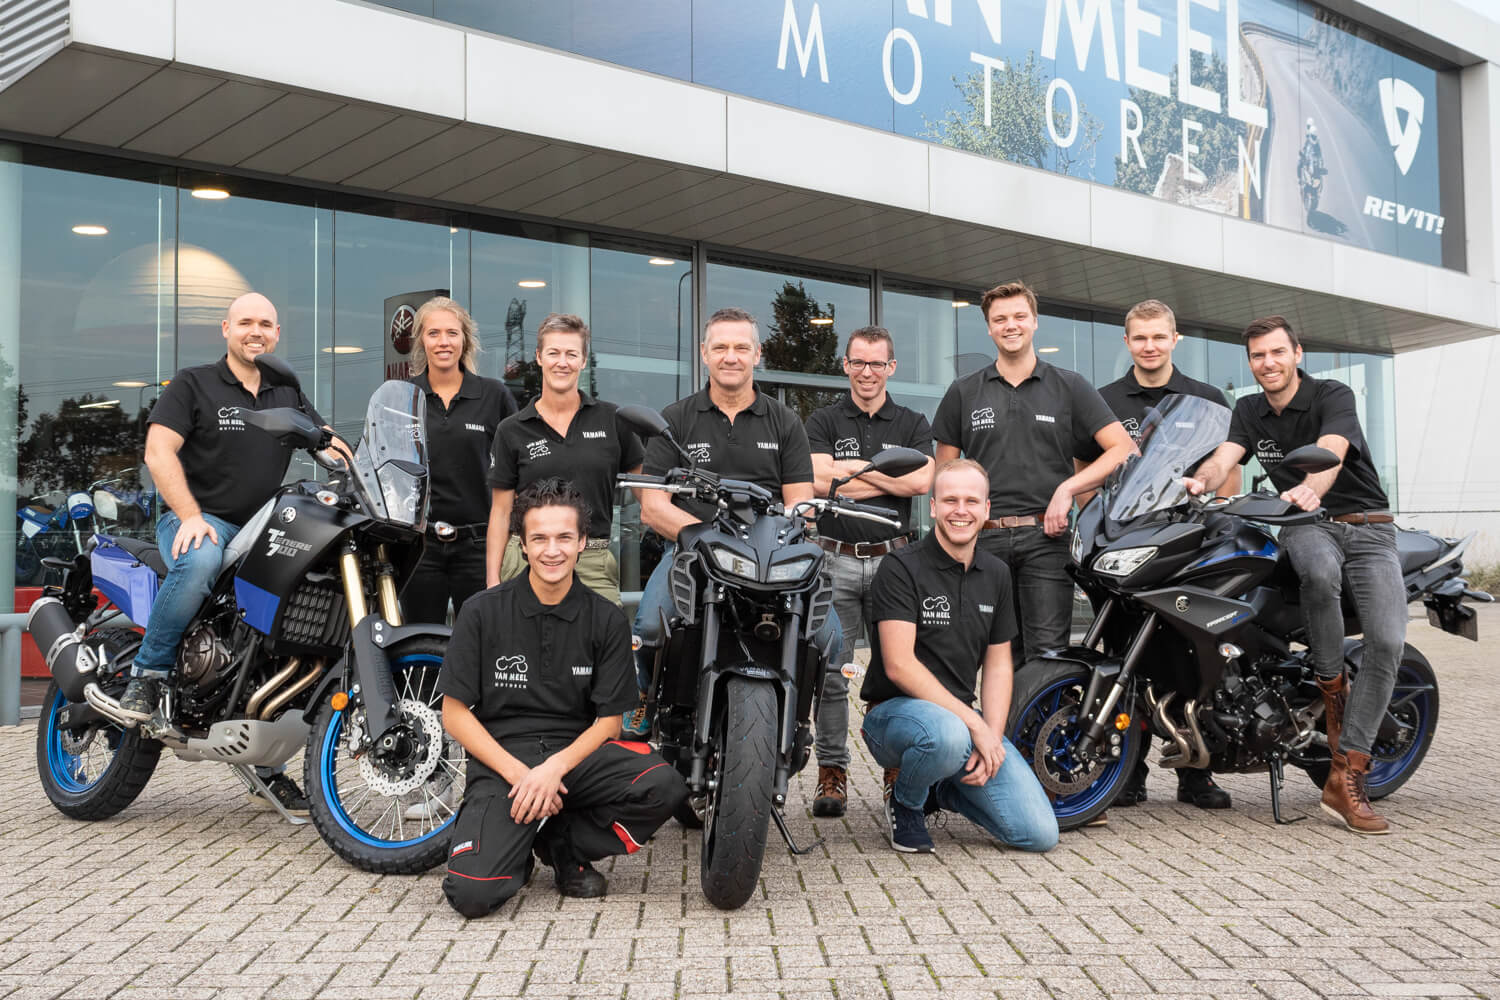 Van Meel Motoren - Motorzaak te Made